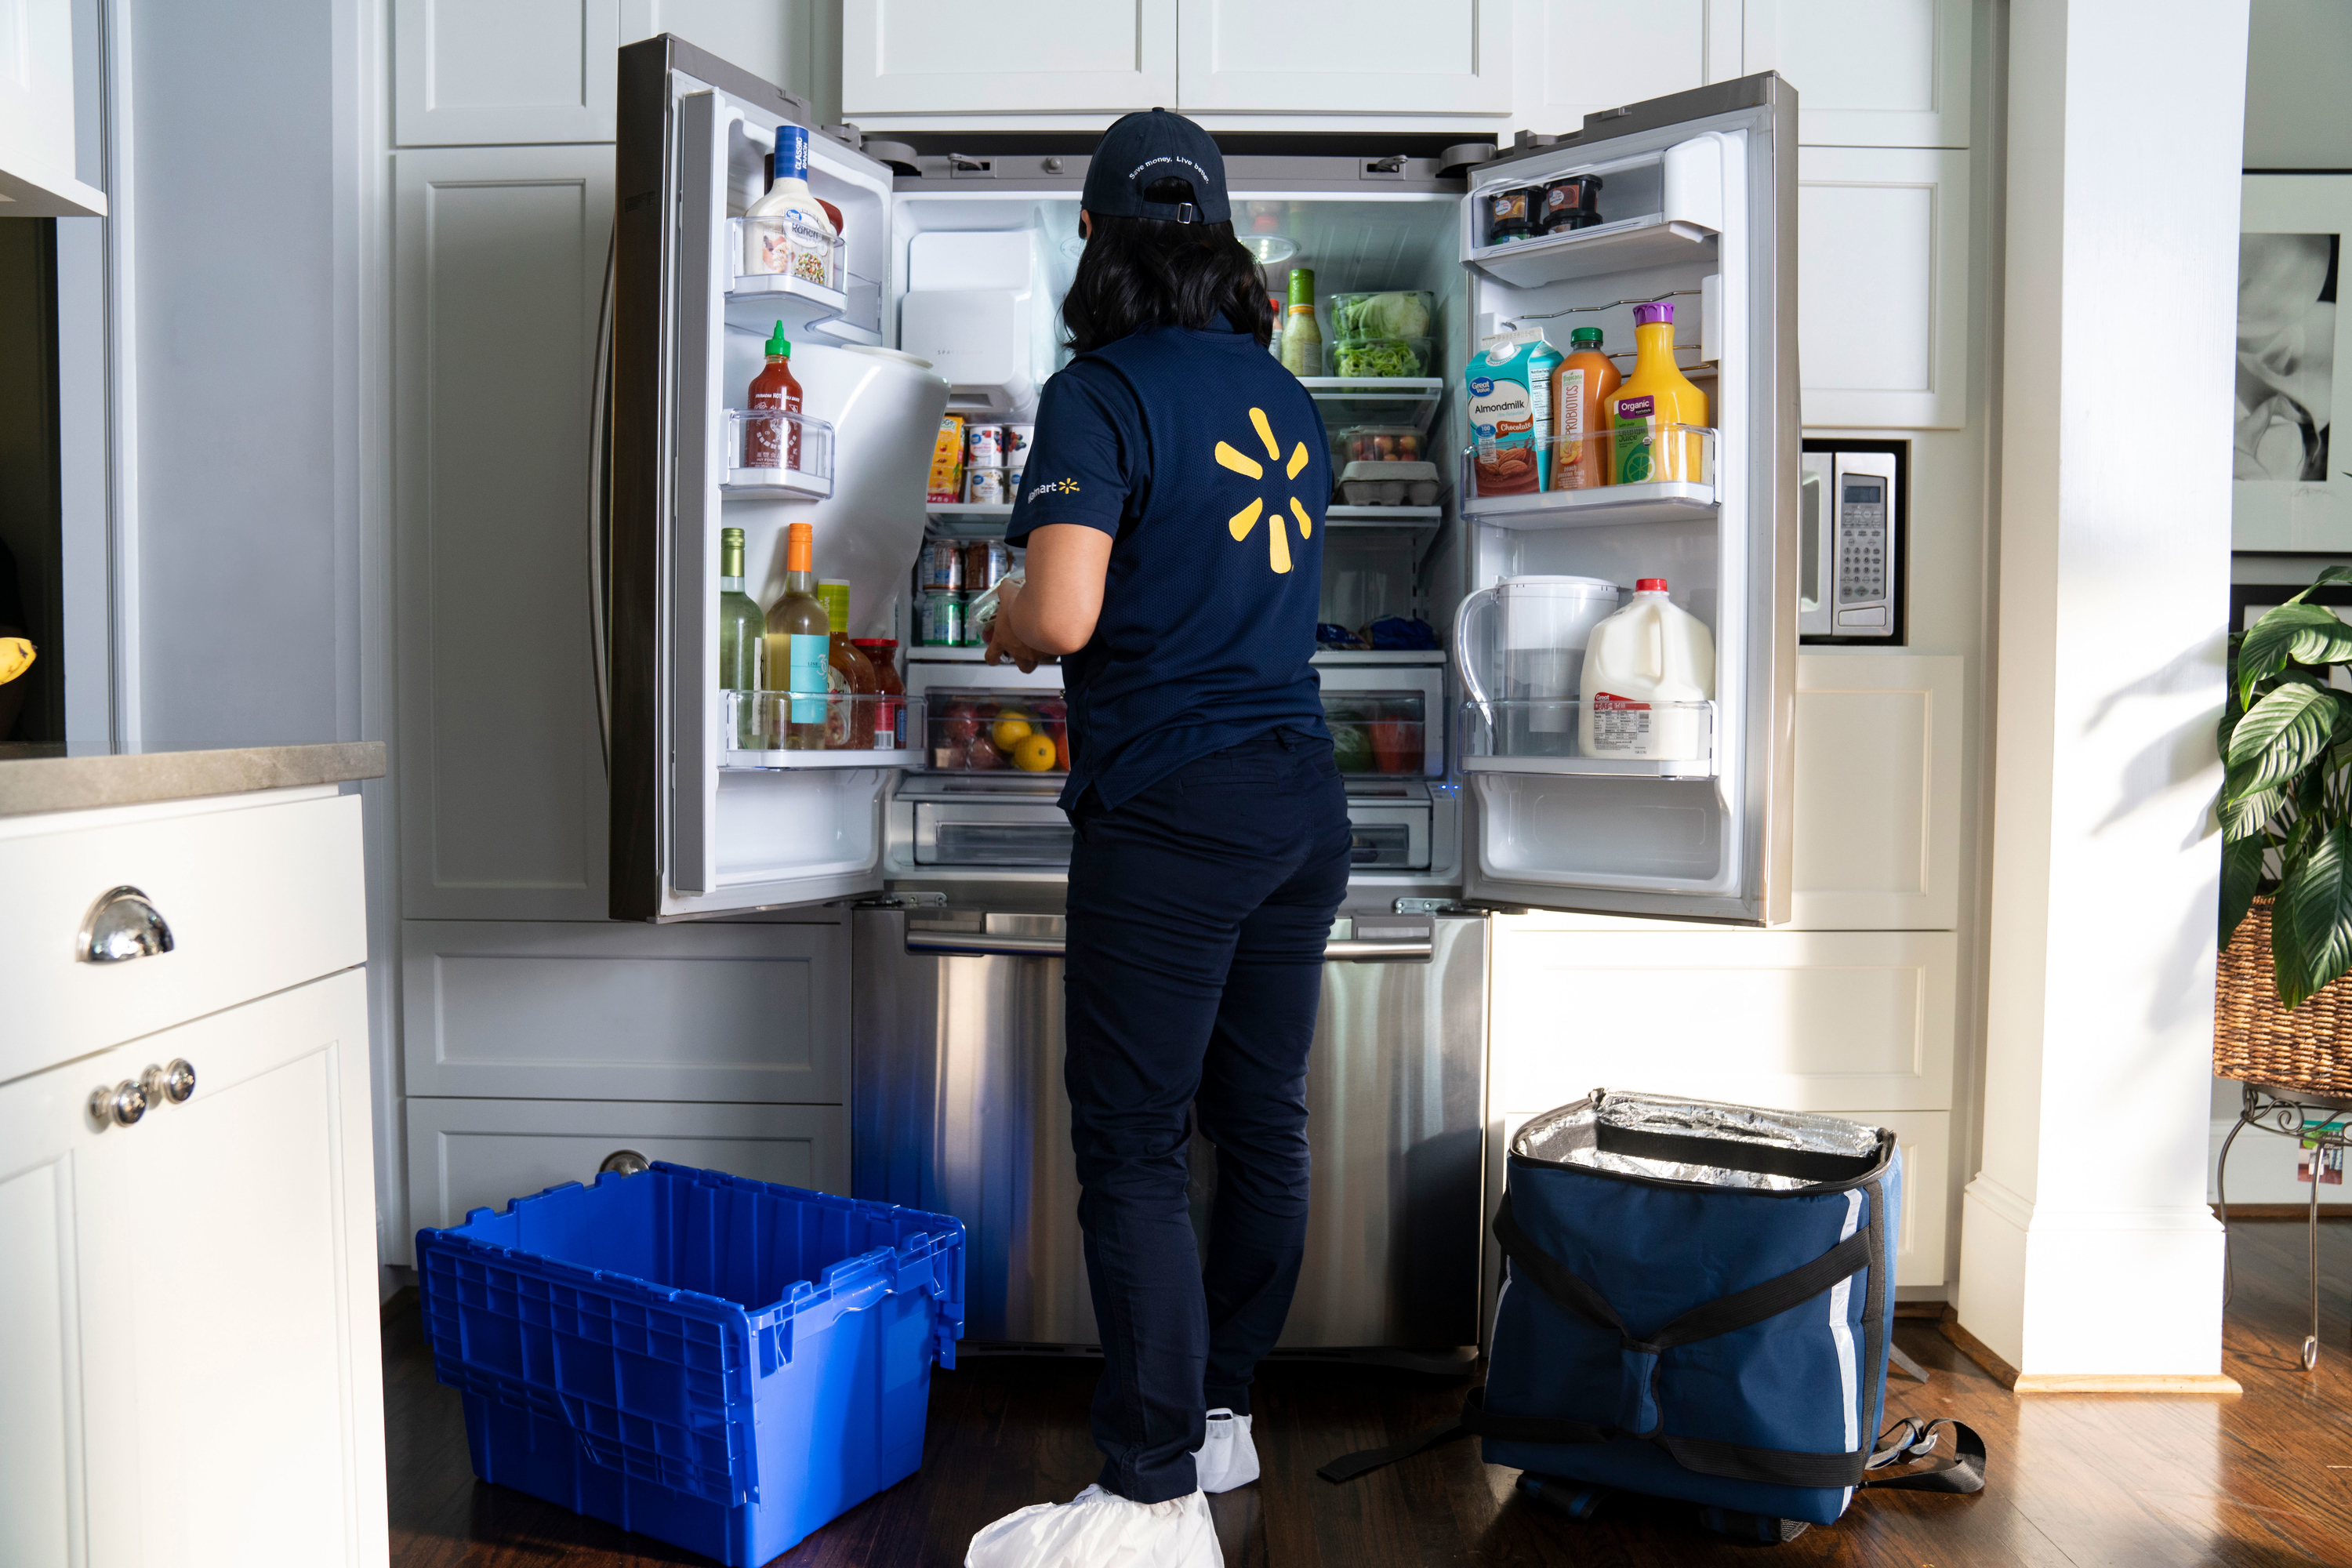 Walmart's new delivery service will put groceries directly in your fridge